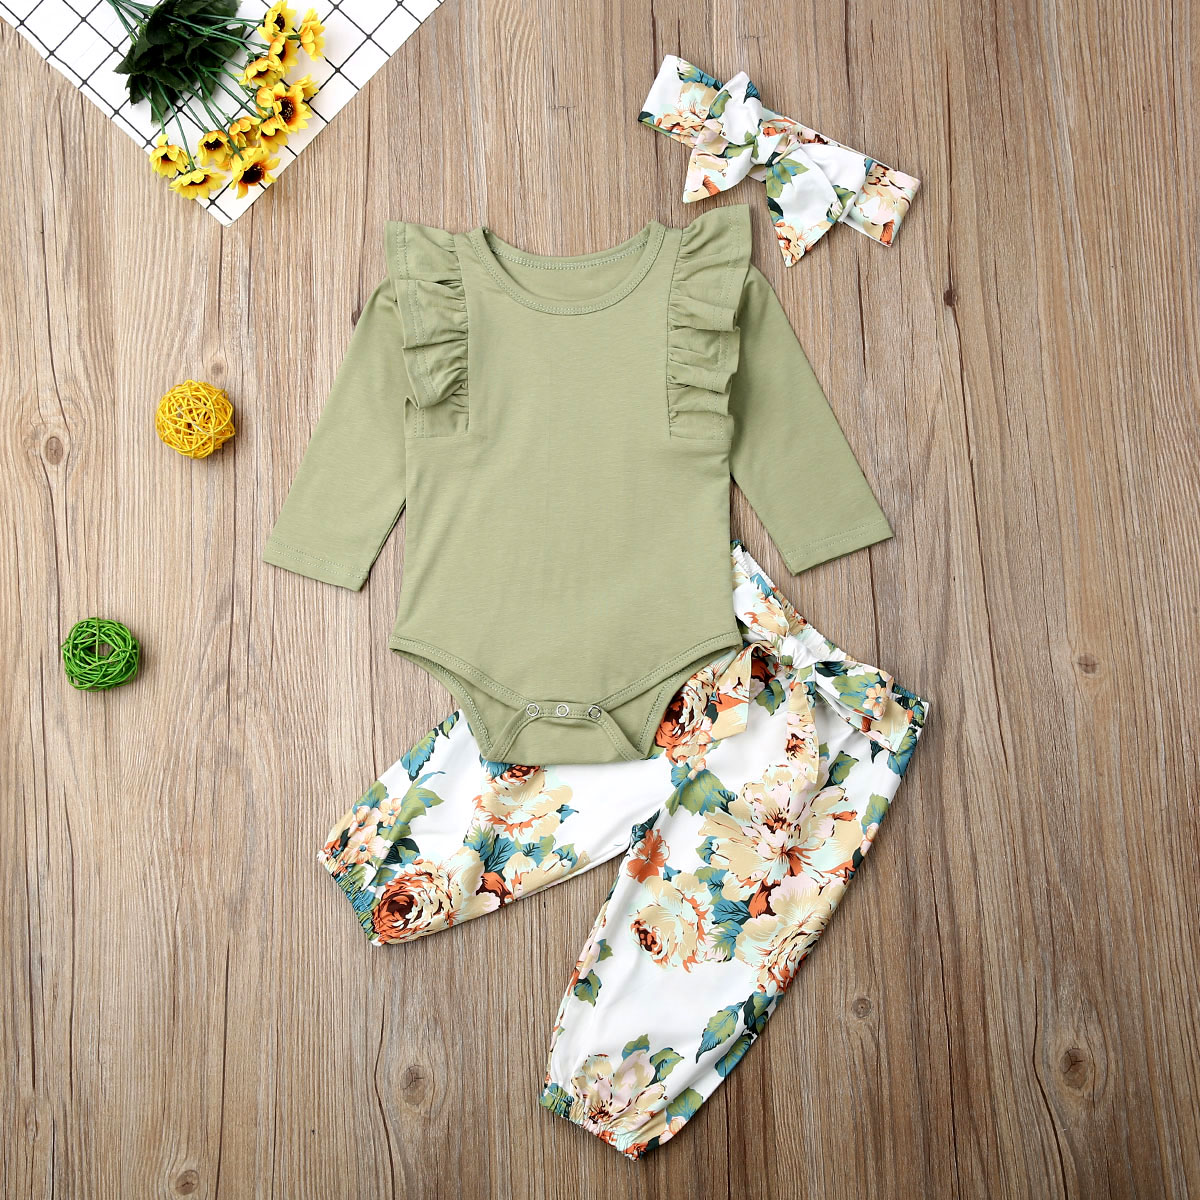 Pudcoco Newborn Baby Girl Clothes Solid Color Ruffle Long Sleeve Romper Tops Flower Print Long Pants Headband 3Pcs Outfits Set